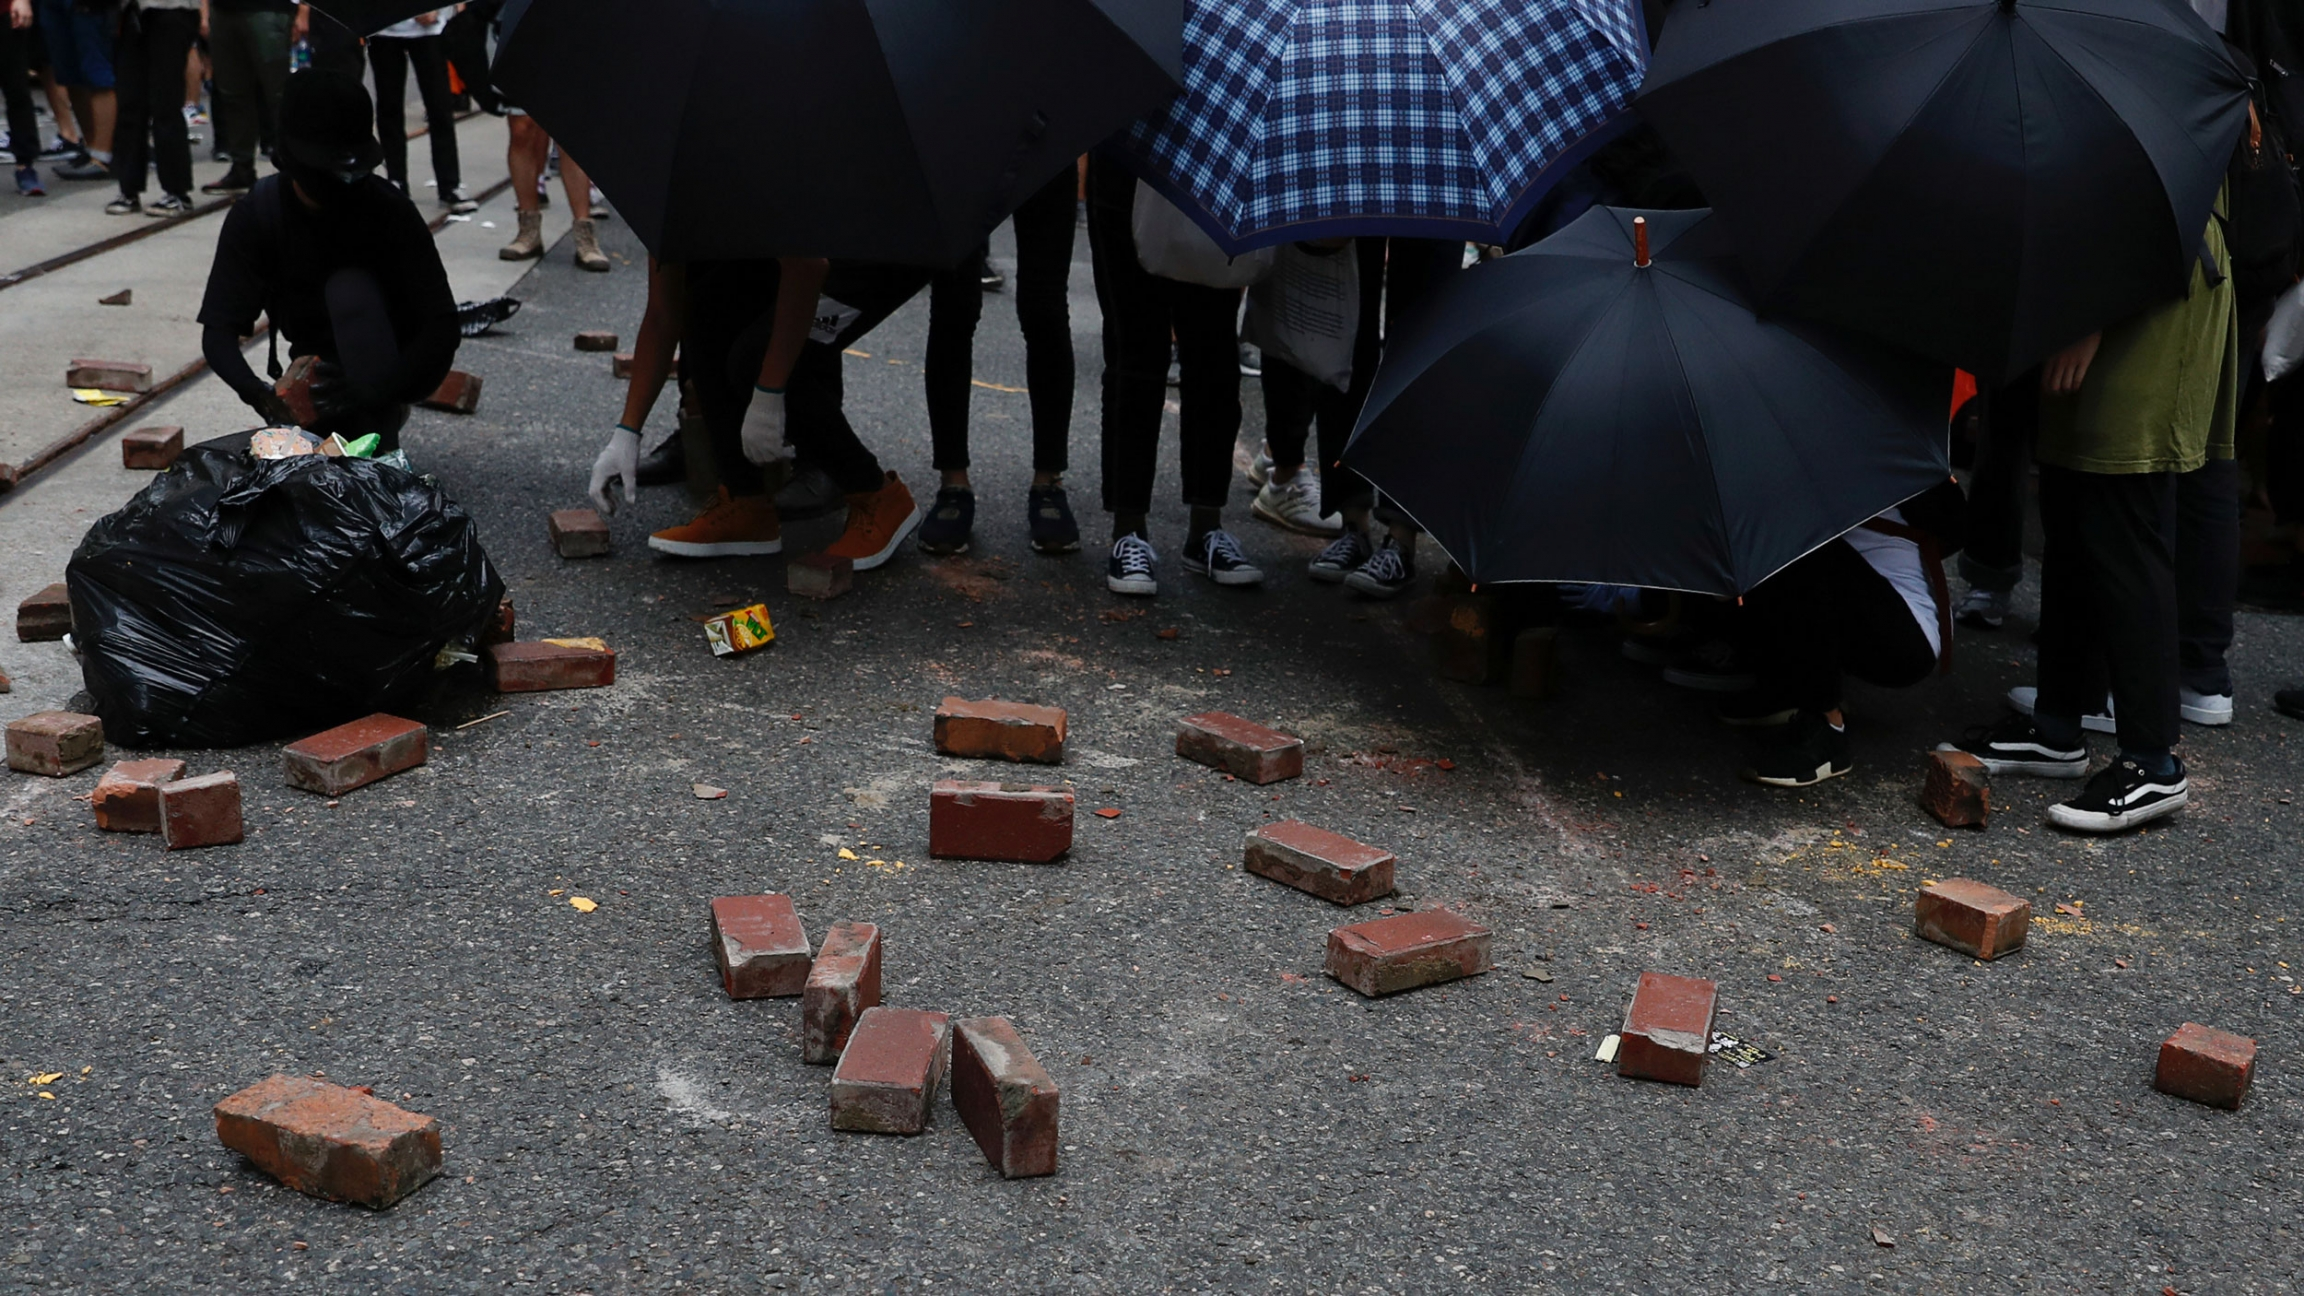 A crowd of people hold umbrellas toward the camera with several bricks laying in the street.